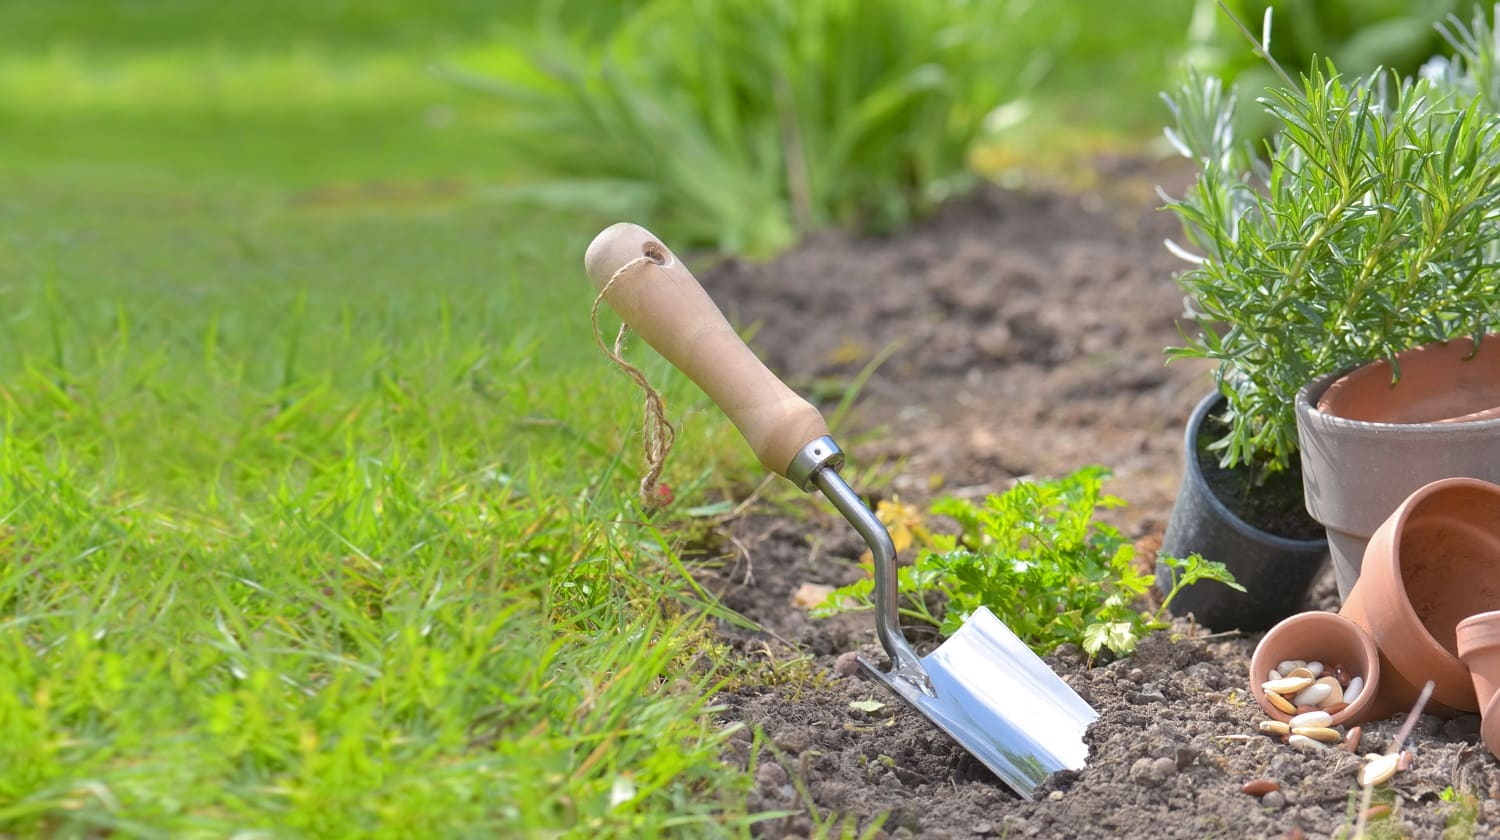 shovel planted in the soil of a garden next to teracotta pots and flowers with copy space in grass background